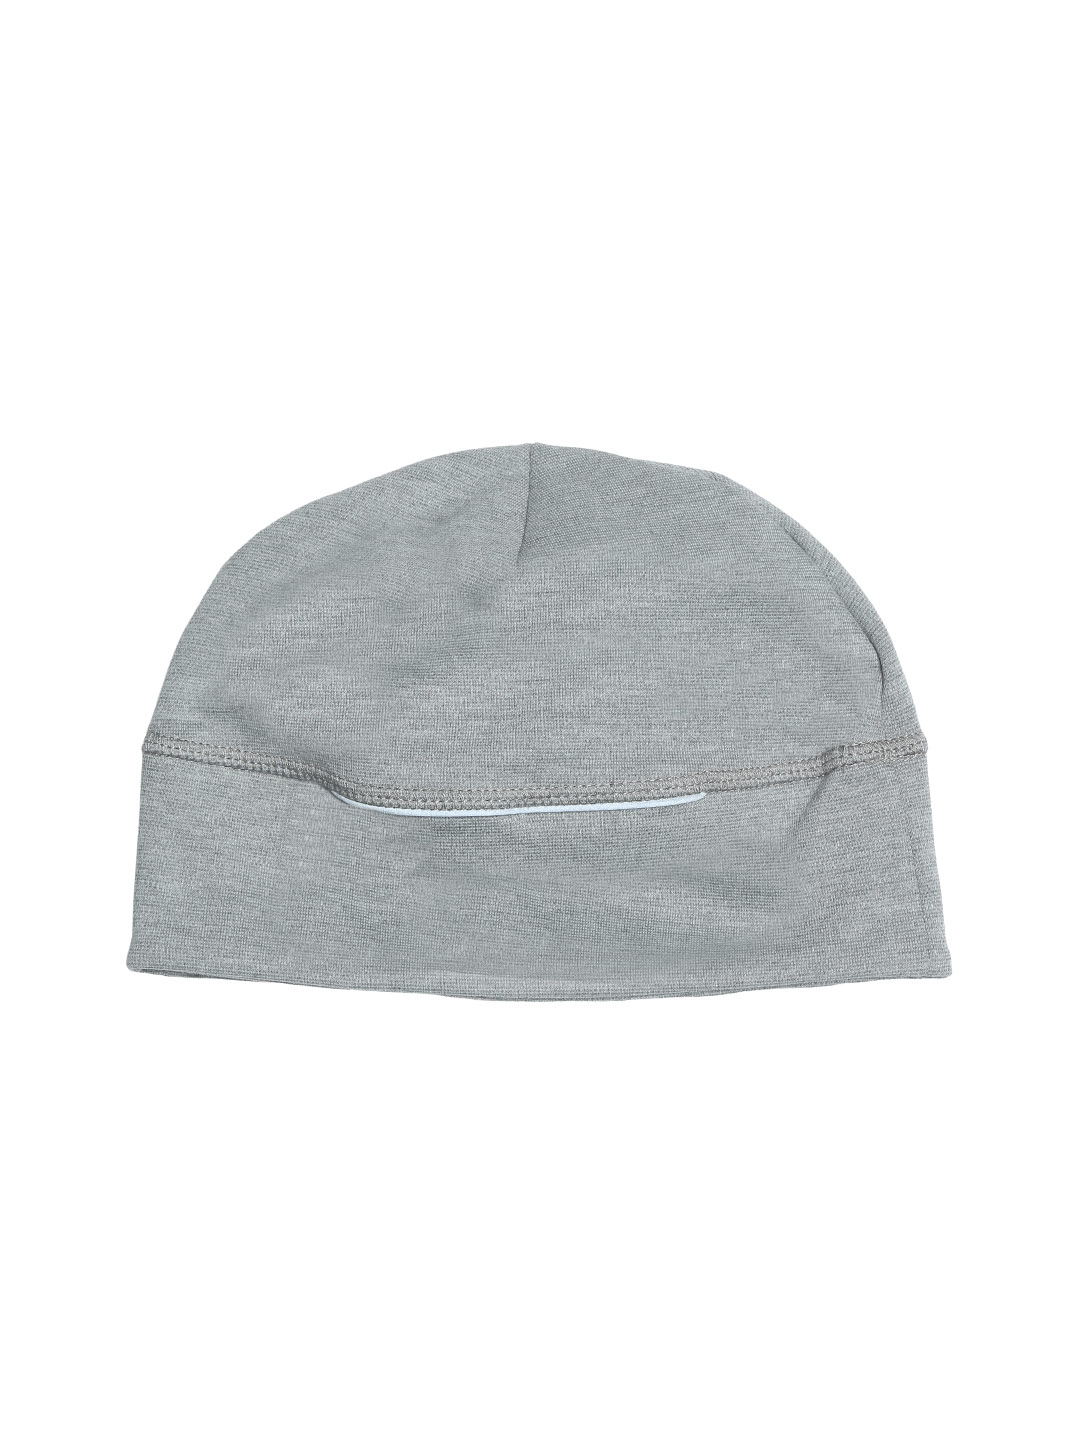 Buy Puma Unisex Grey Solid Reflective Running Beanie - Caps for ... bb0de2a76ba